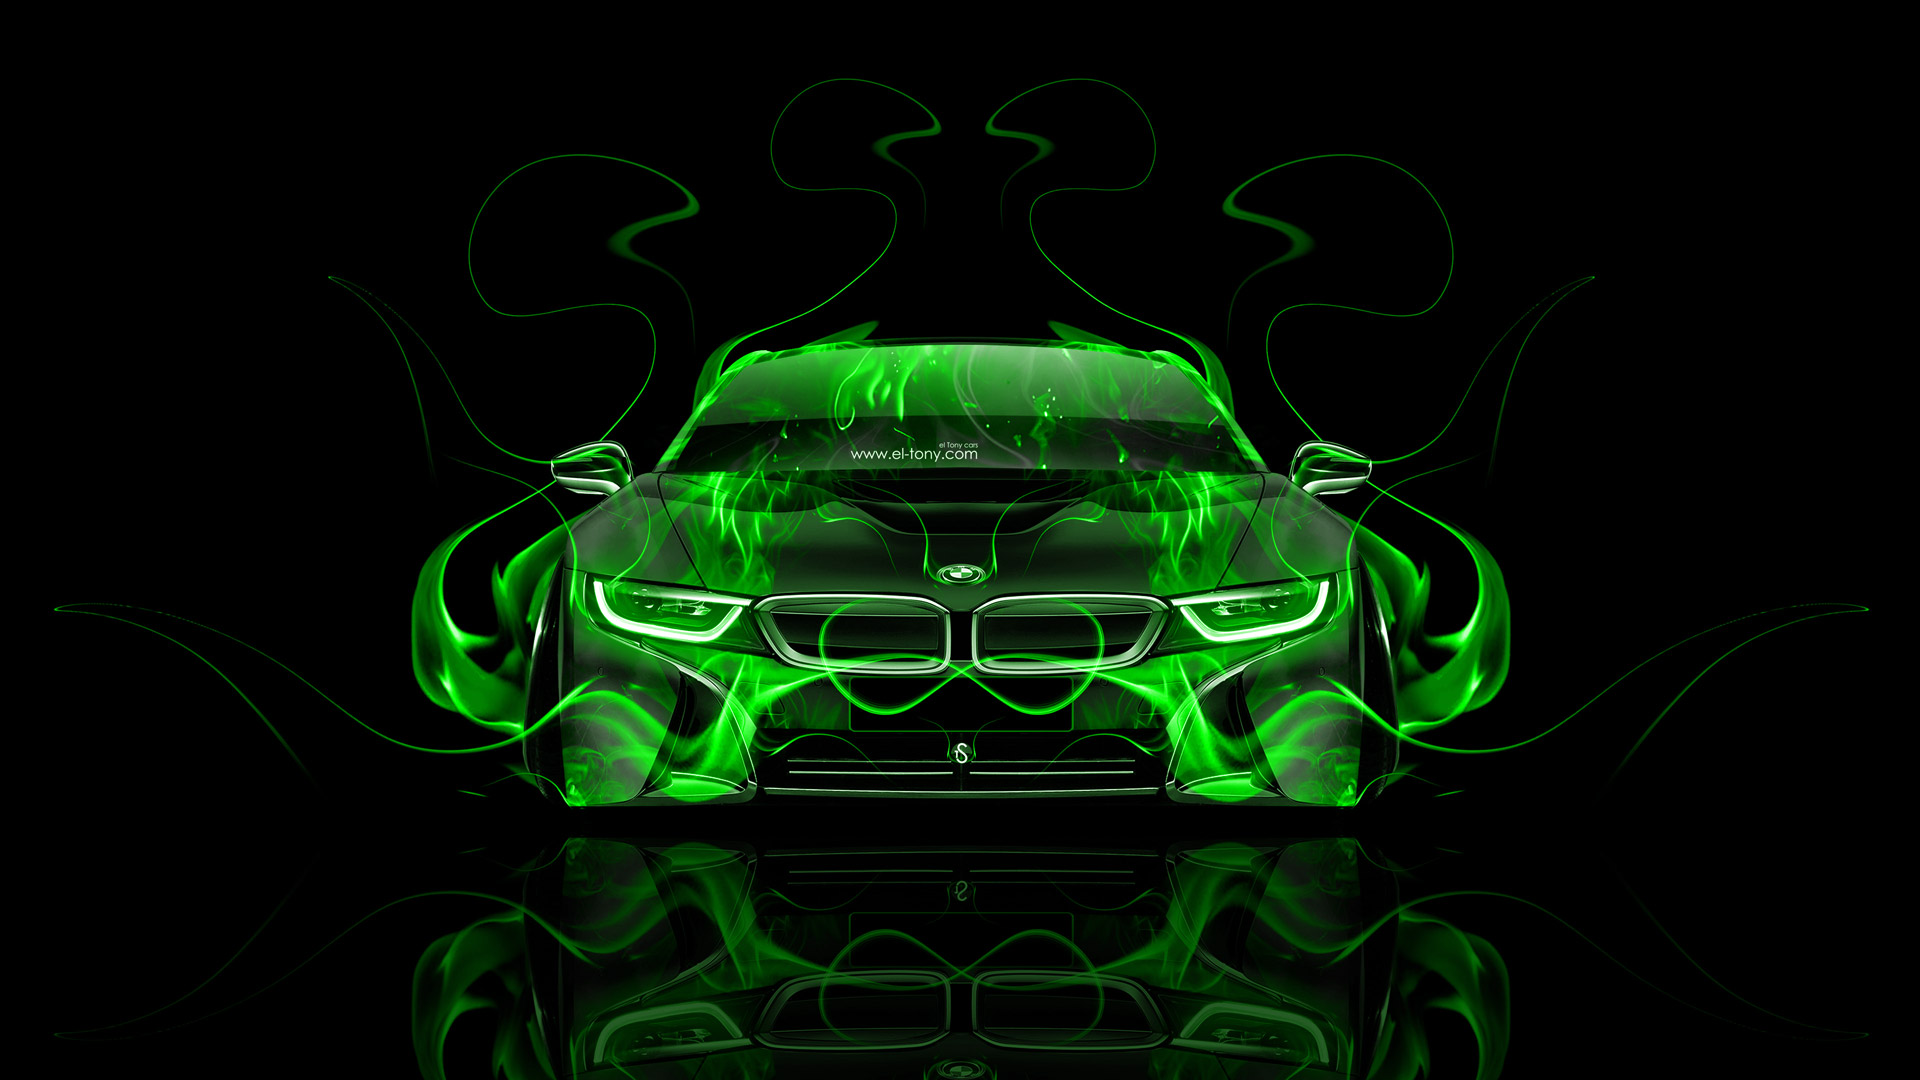 Bmw I8 Front Fire Abstract Car 2014 El Tony